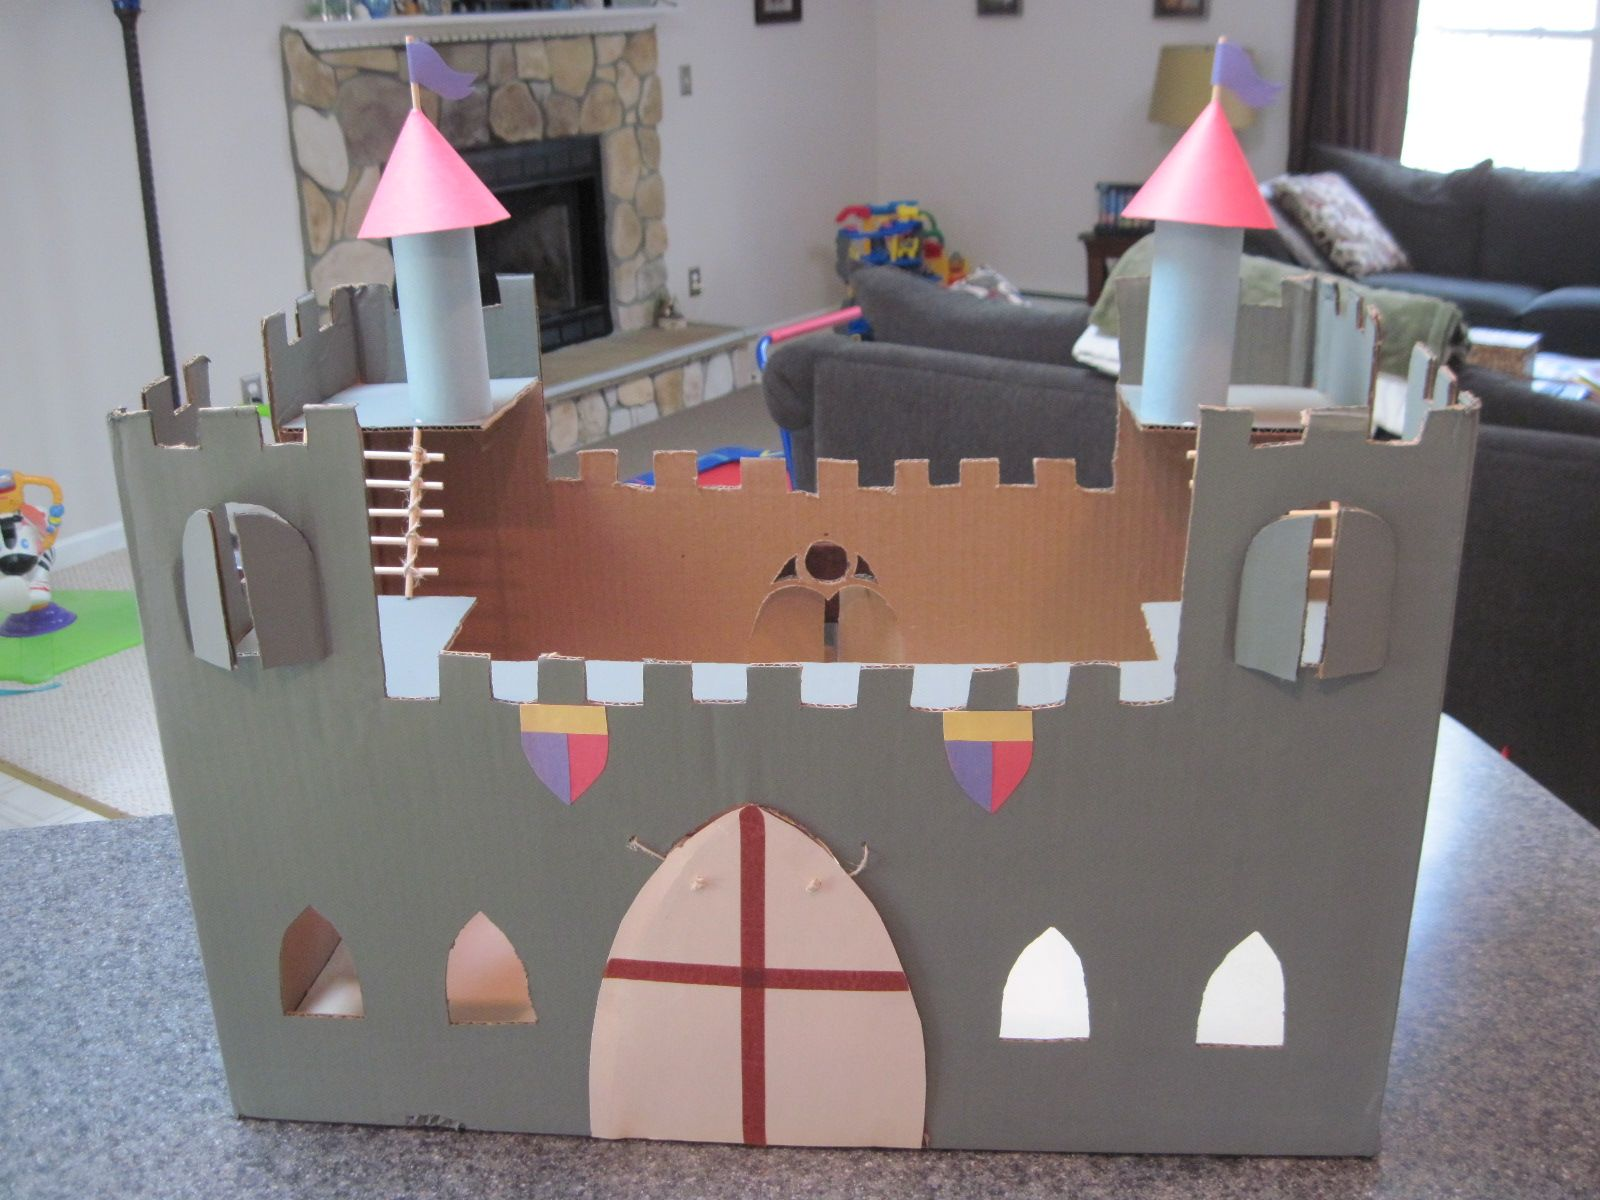 Cardboard box castle.  Twine for ladders & working drawbridge.  There's 2 windows each flanking the big window on rear wall.